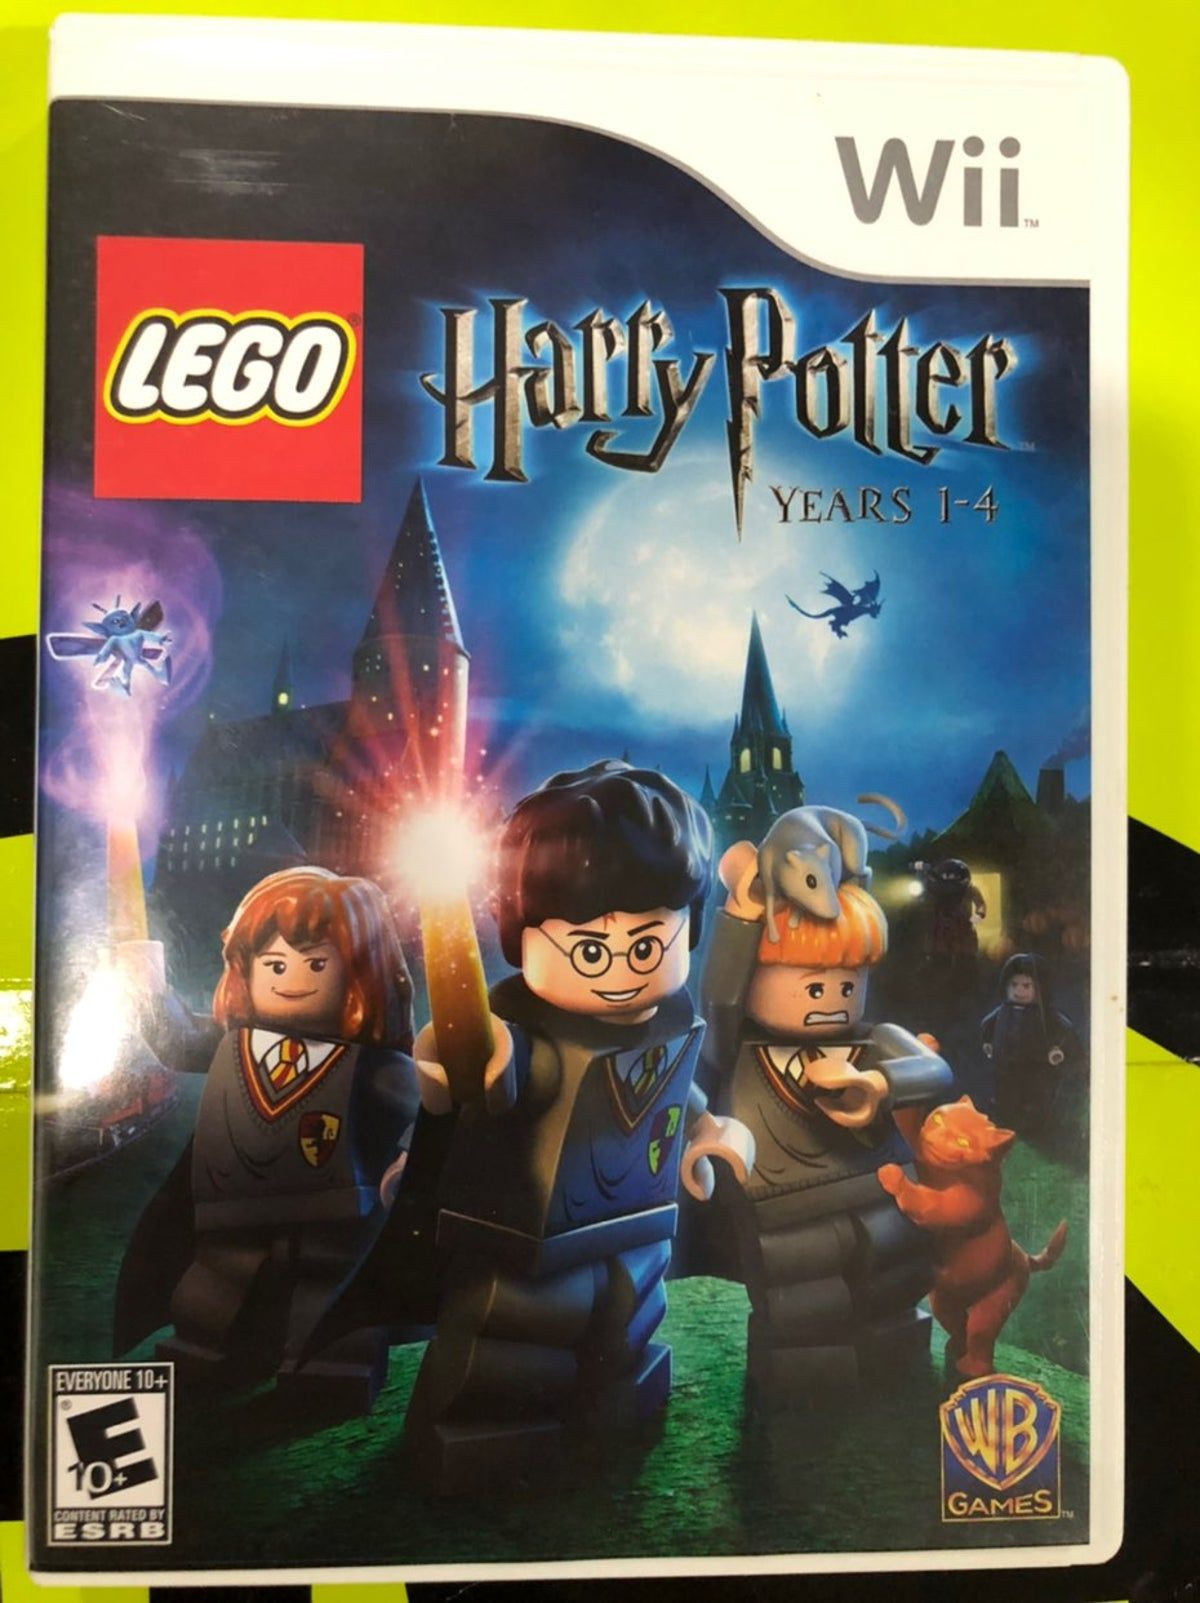 Wii Harry Potter Game And Movie Lego Harry Potter Harry Potter Years Harry Potter Games